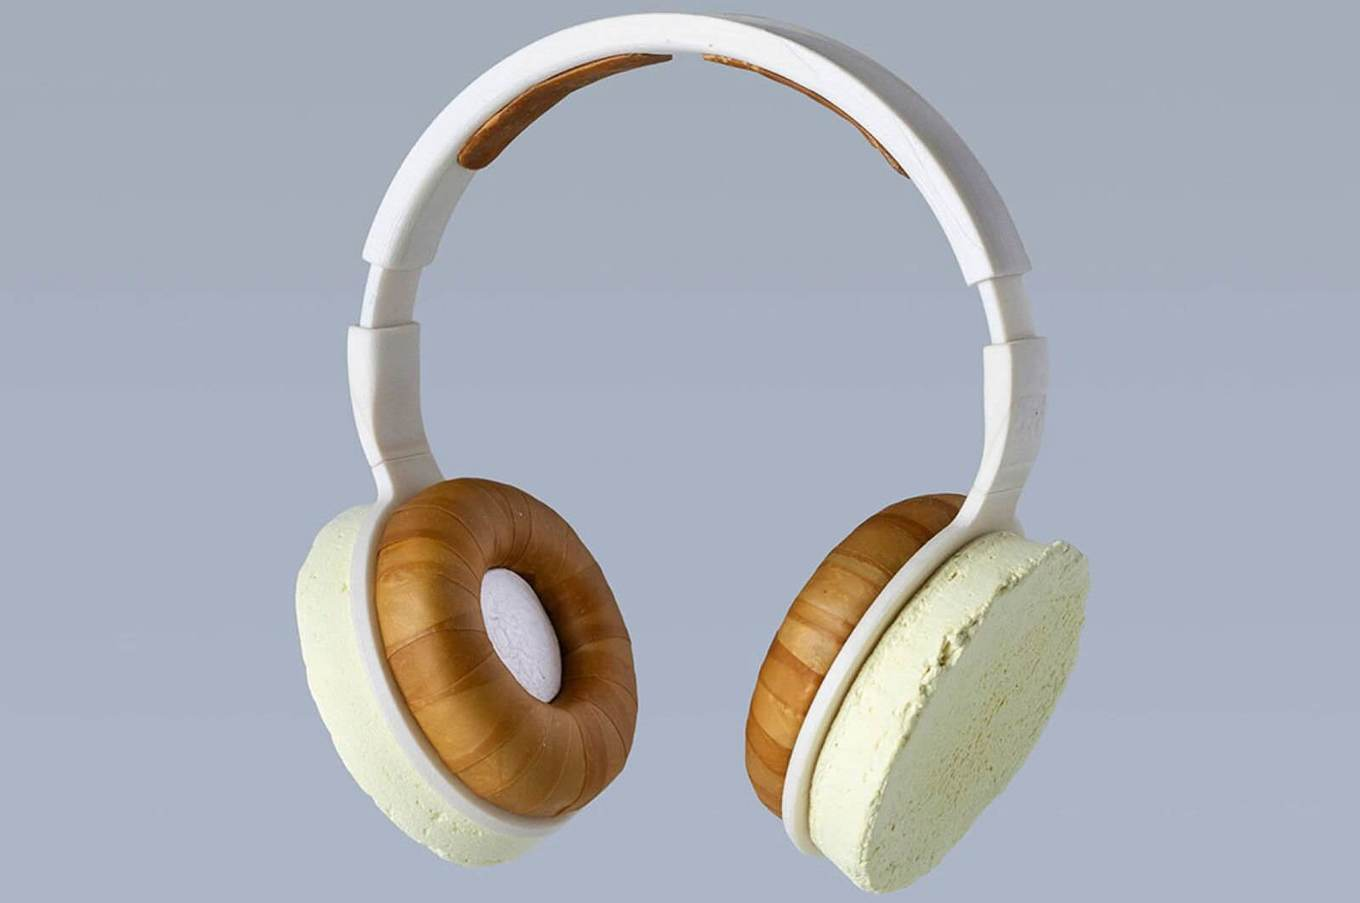 , Could these fungus headphones help alleviate the e-waste problem?, The Circular Economy, The Circular Economy